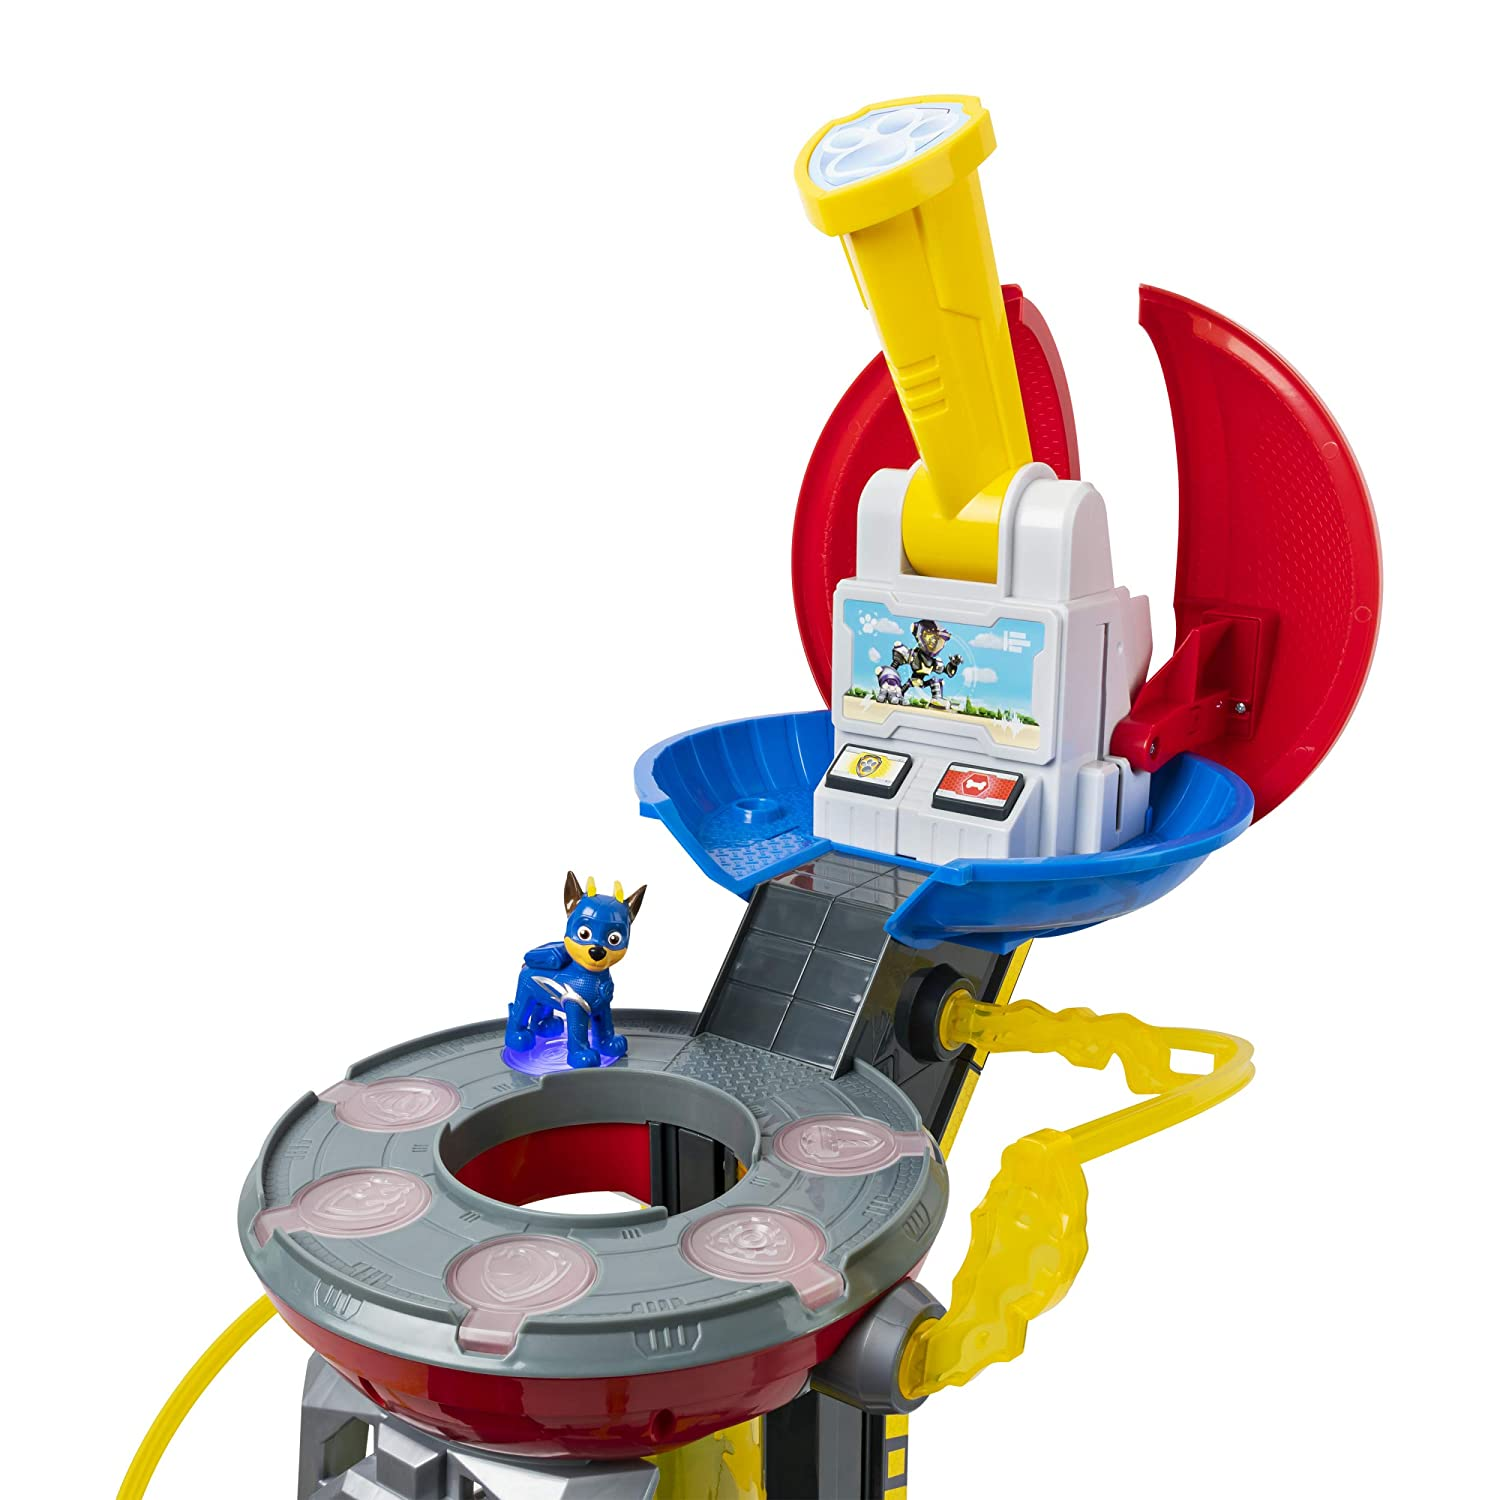 PAW Patrol Super Mighty Pups Lookout Tower – Available Now